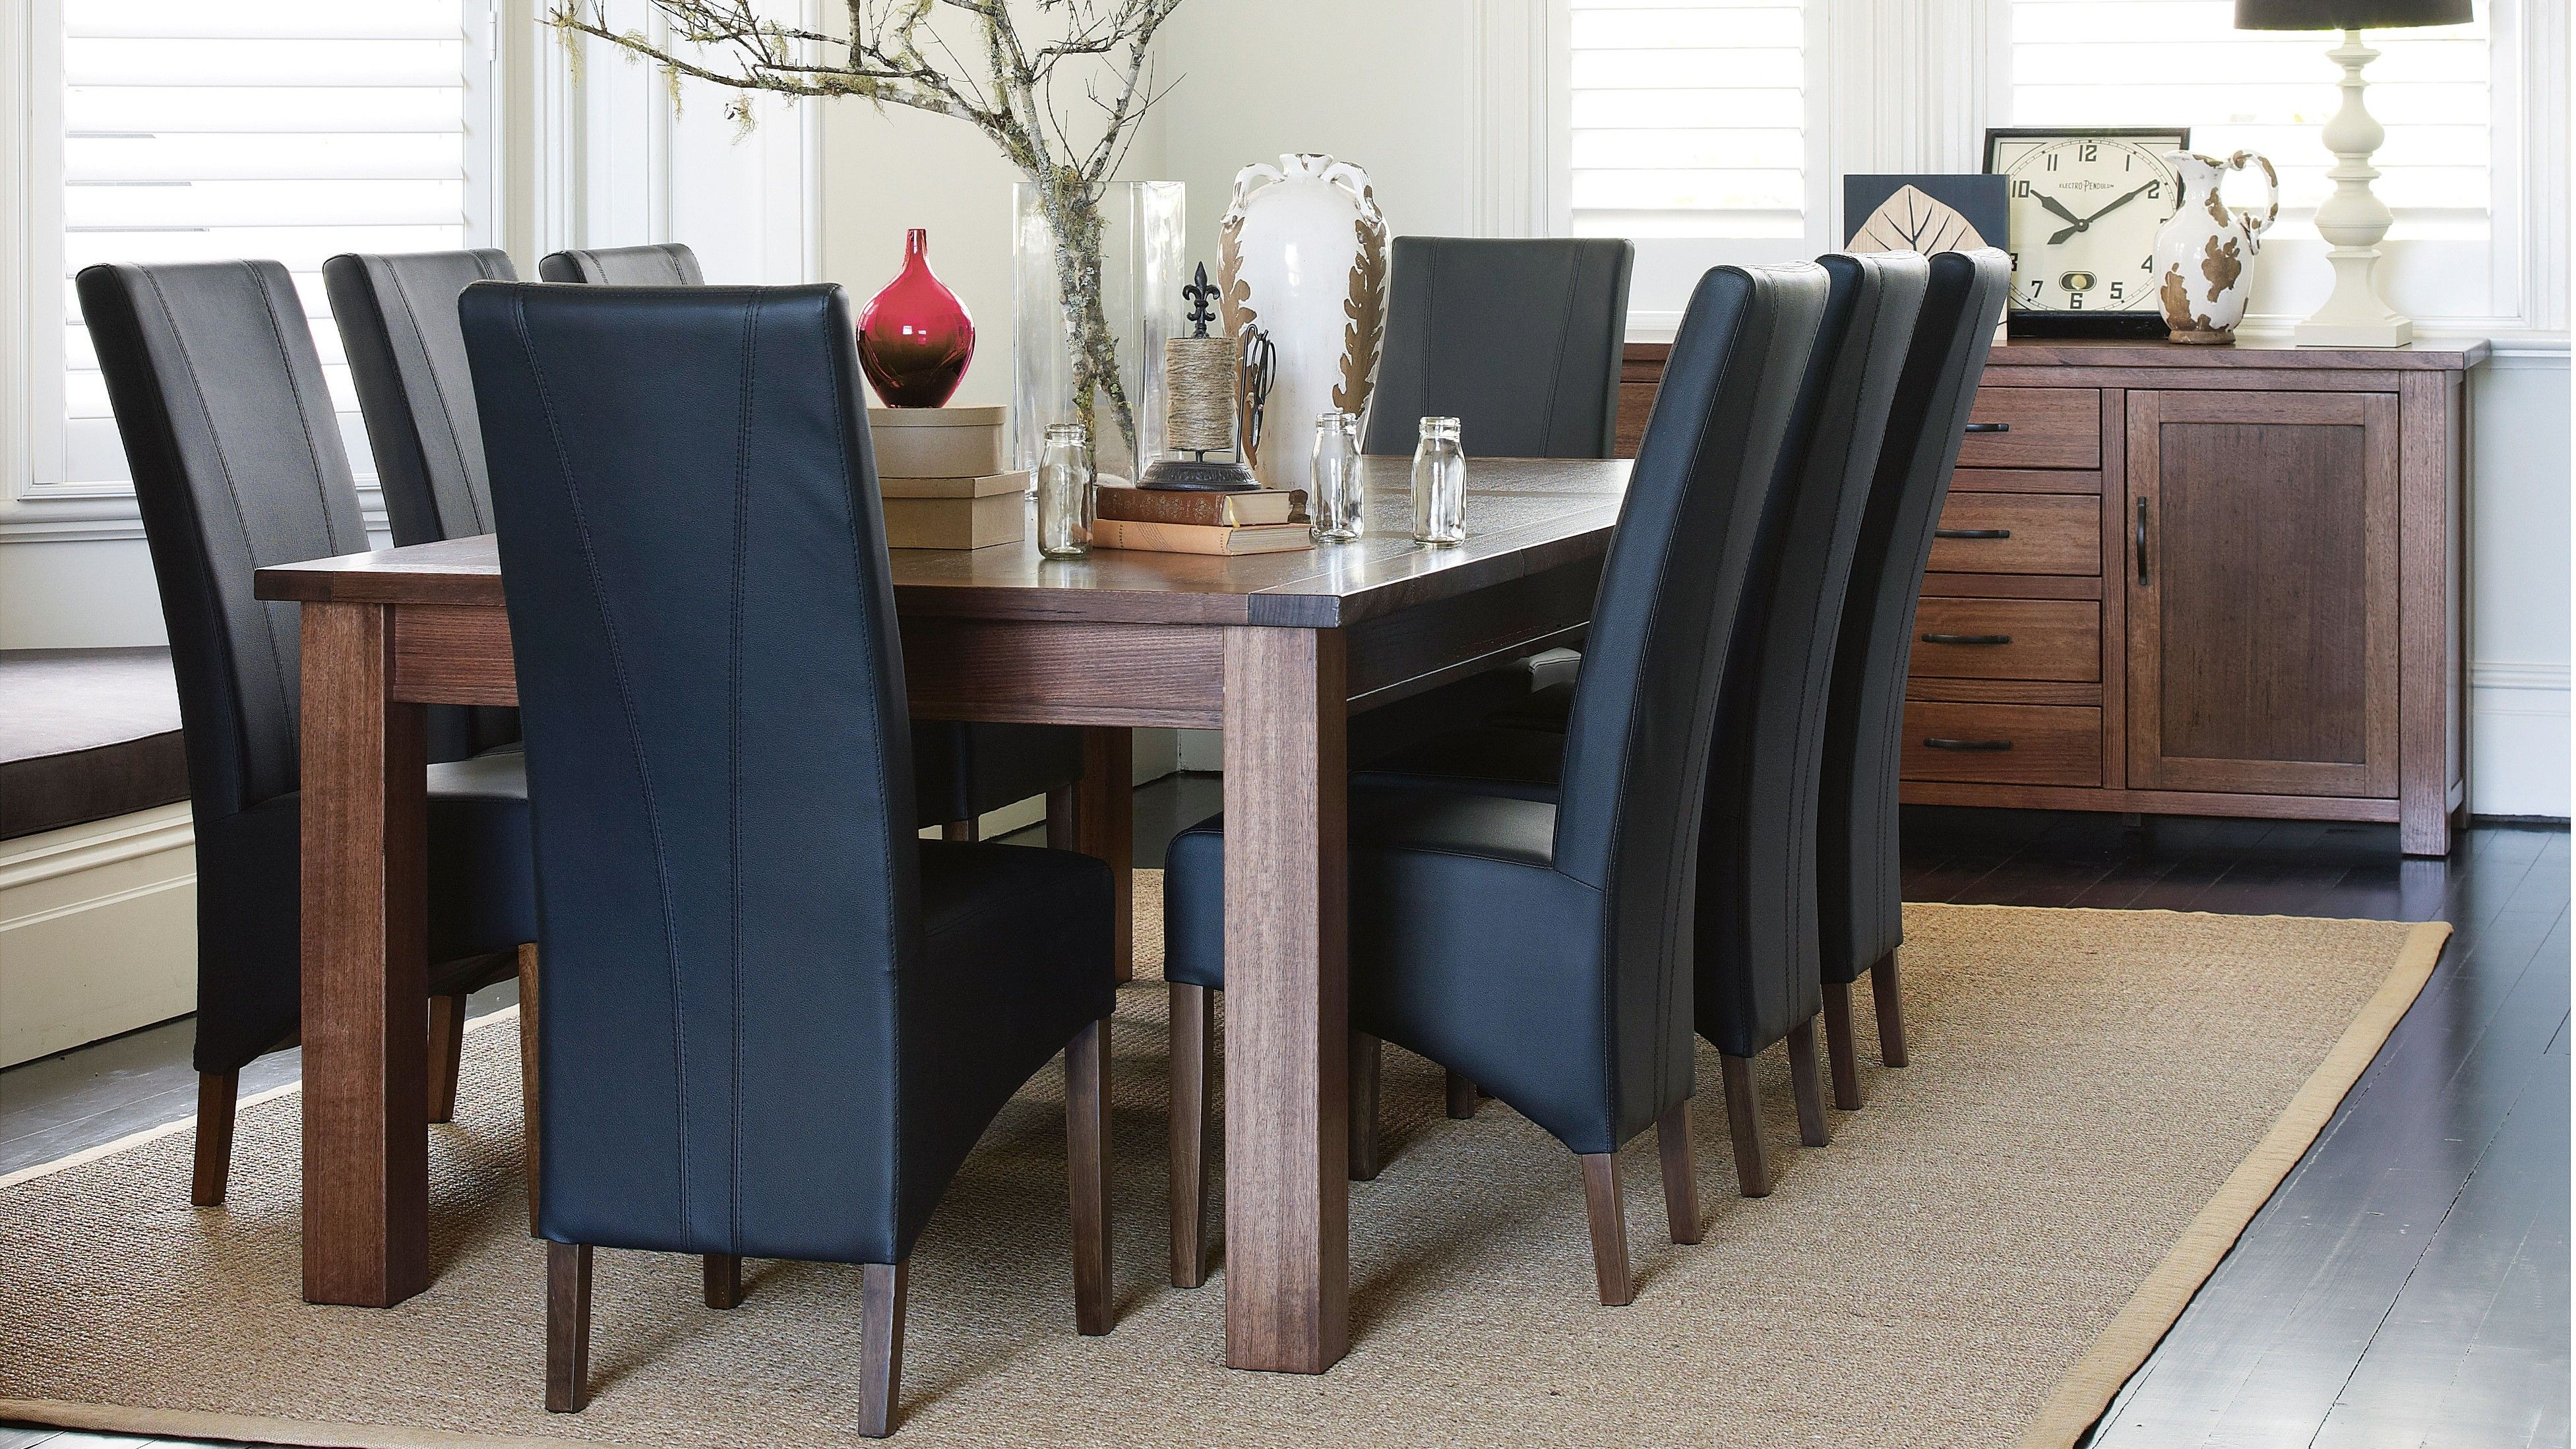 Create A Beautiful Dining Area In Your Home With The Navana 9 Piece Suite Sleek Tasmanian Oak Table Is Offset By High Back Chairs